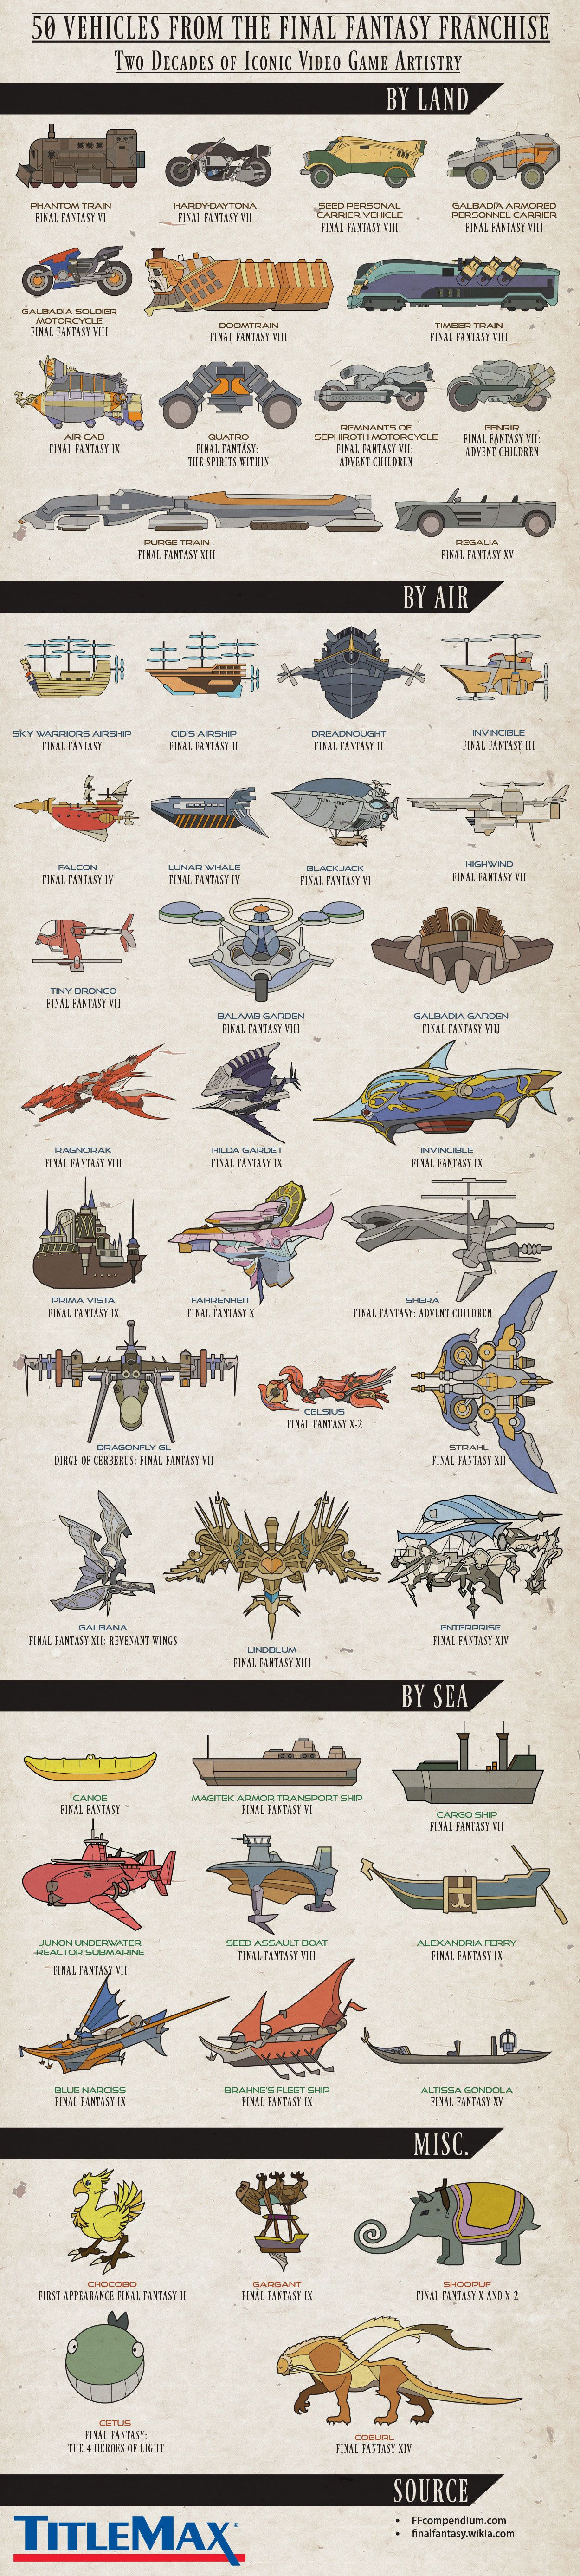 50 Vehicles From The Final Fantasy Franchise #Infographic